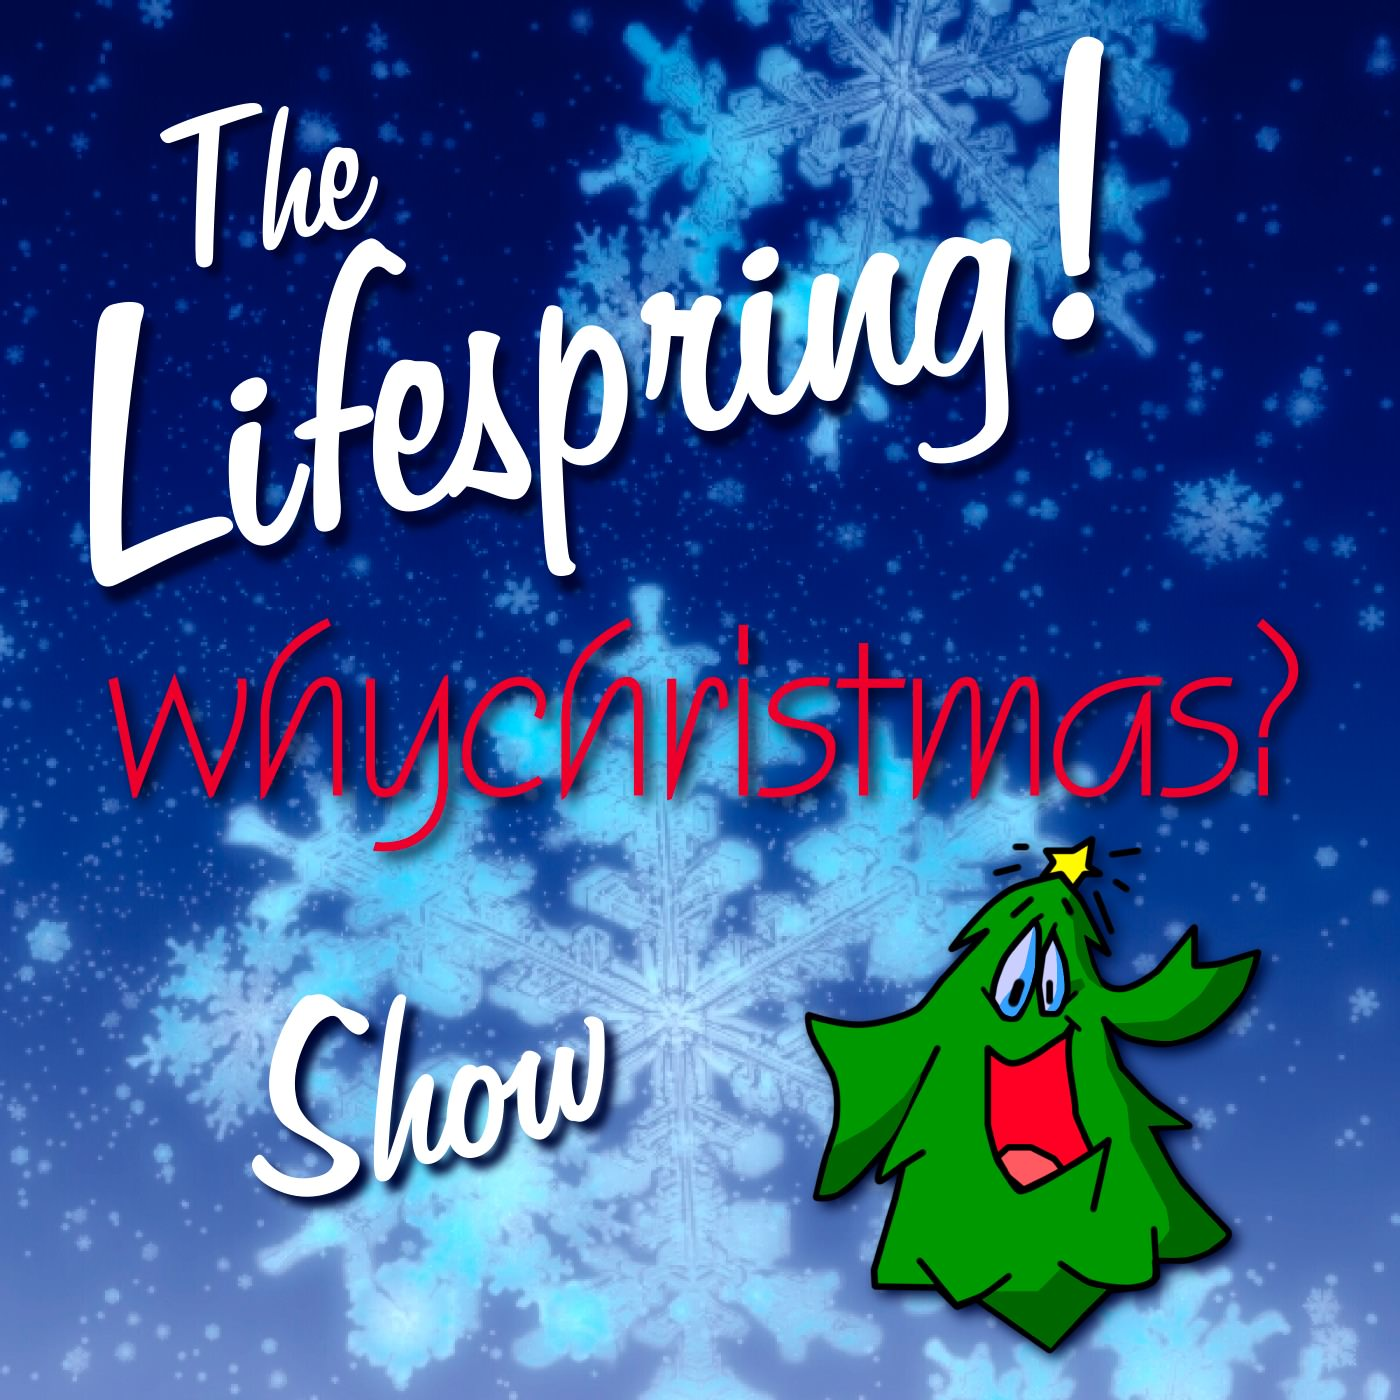 Lifespring! WhyChristmas Show